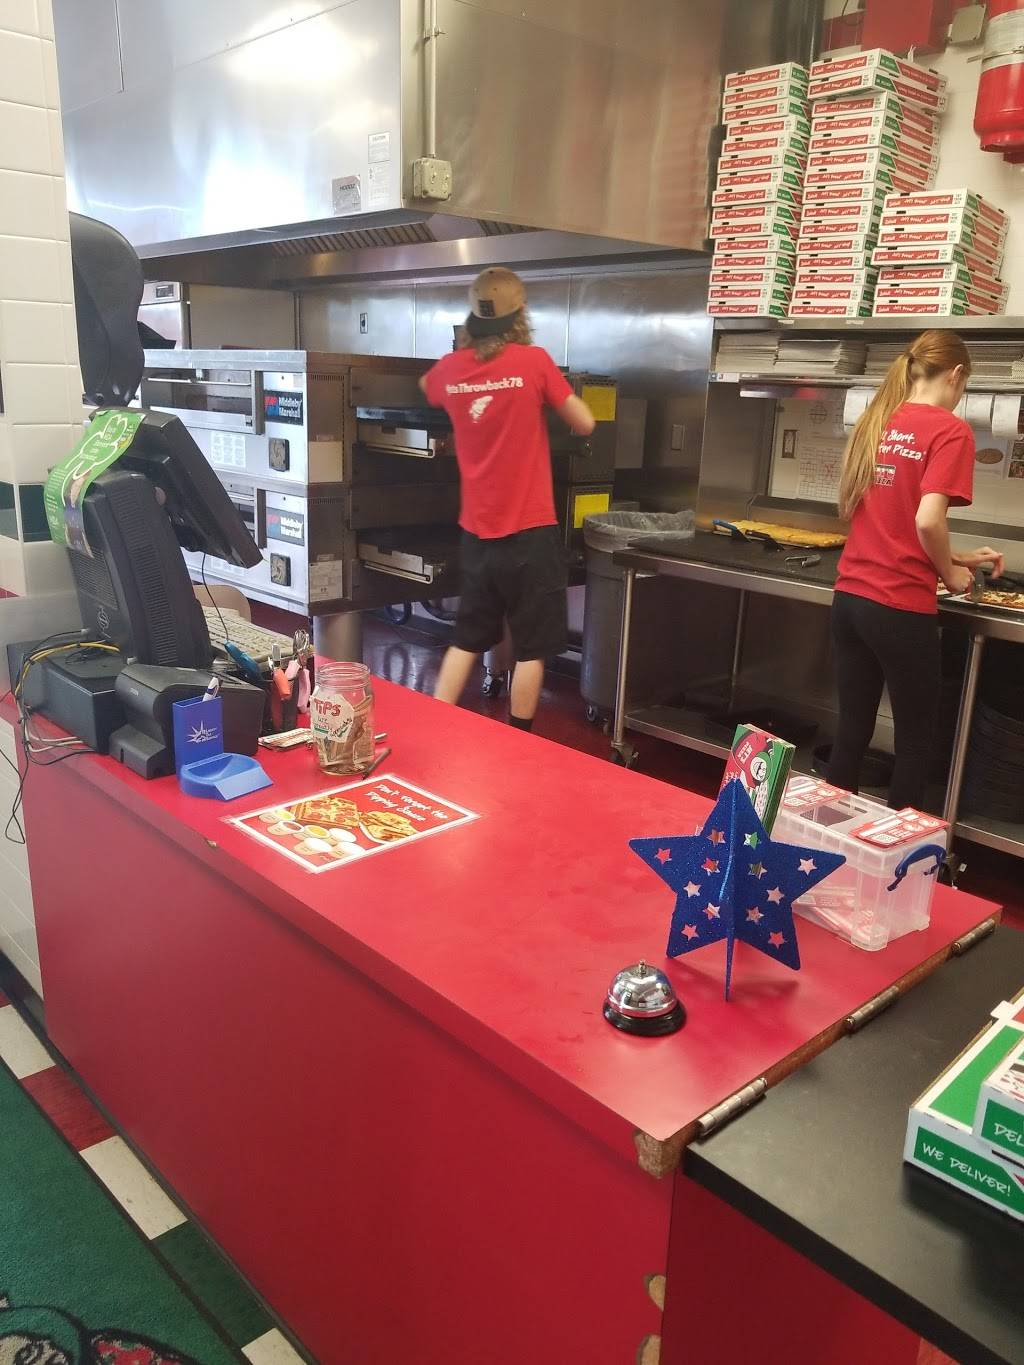 Jets Pizza - meal delivery  | Photo 6 of 10 | Address: 5825 Maplecrest Rd, Fort Wayne, IN 46835, USA | Phone: (260) 485-8550